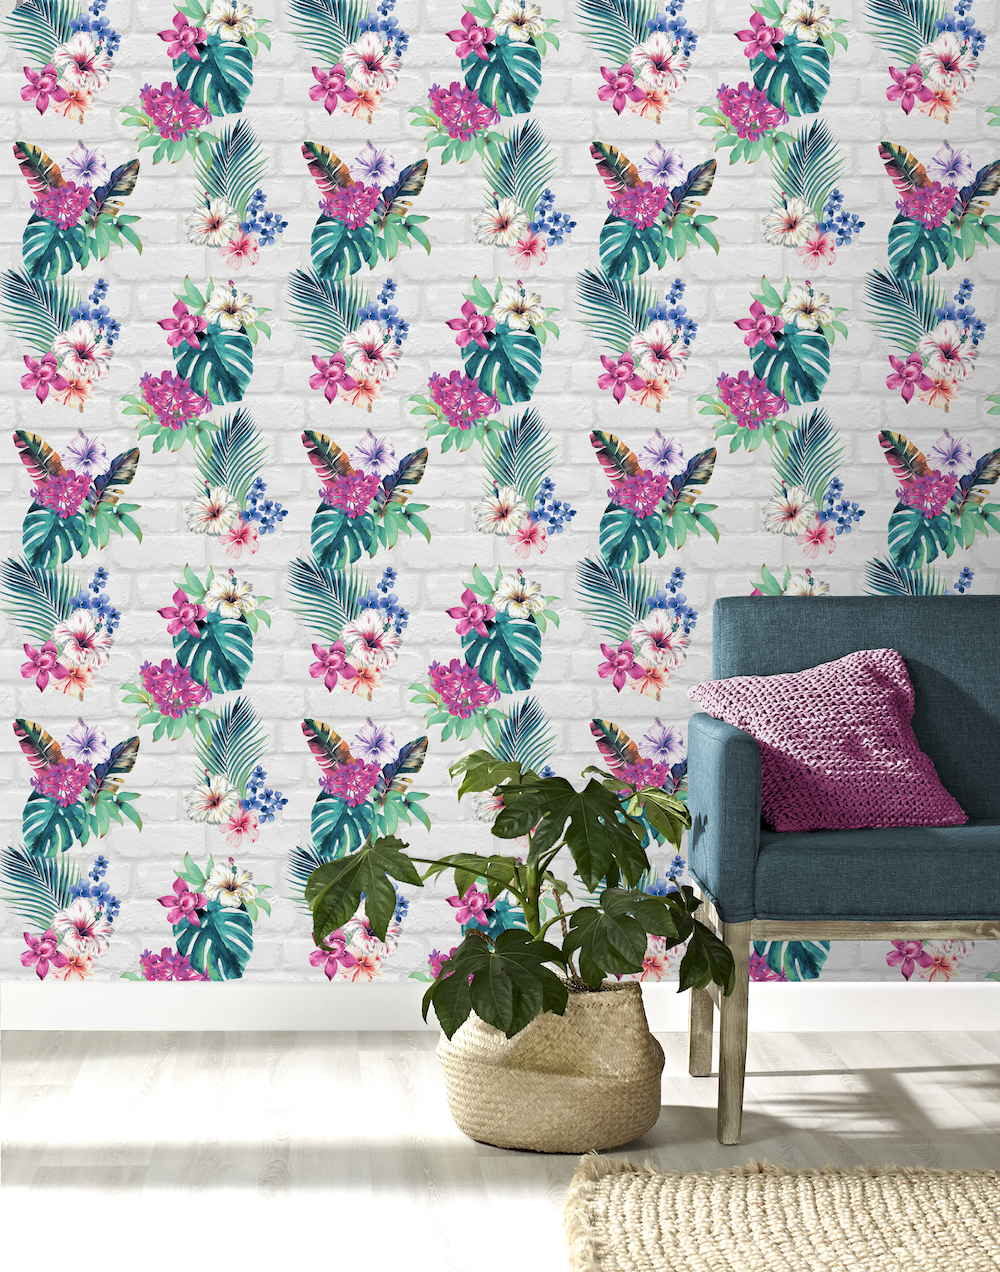 Accessorize Camden Brick Floral Wallpaper - Light Grey Multi